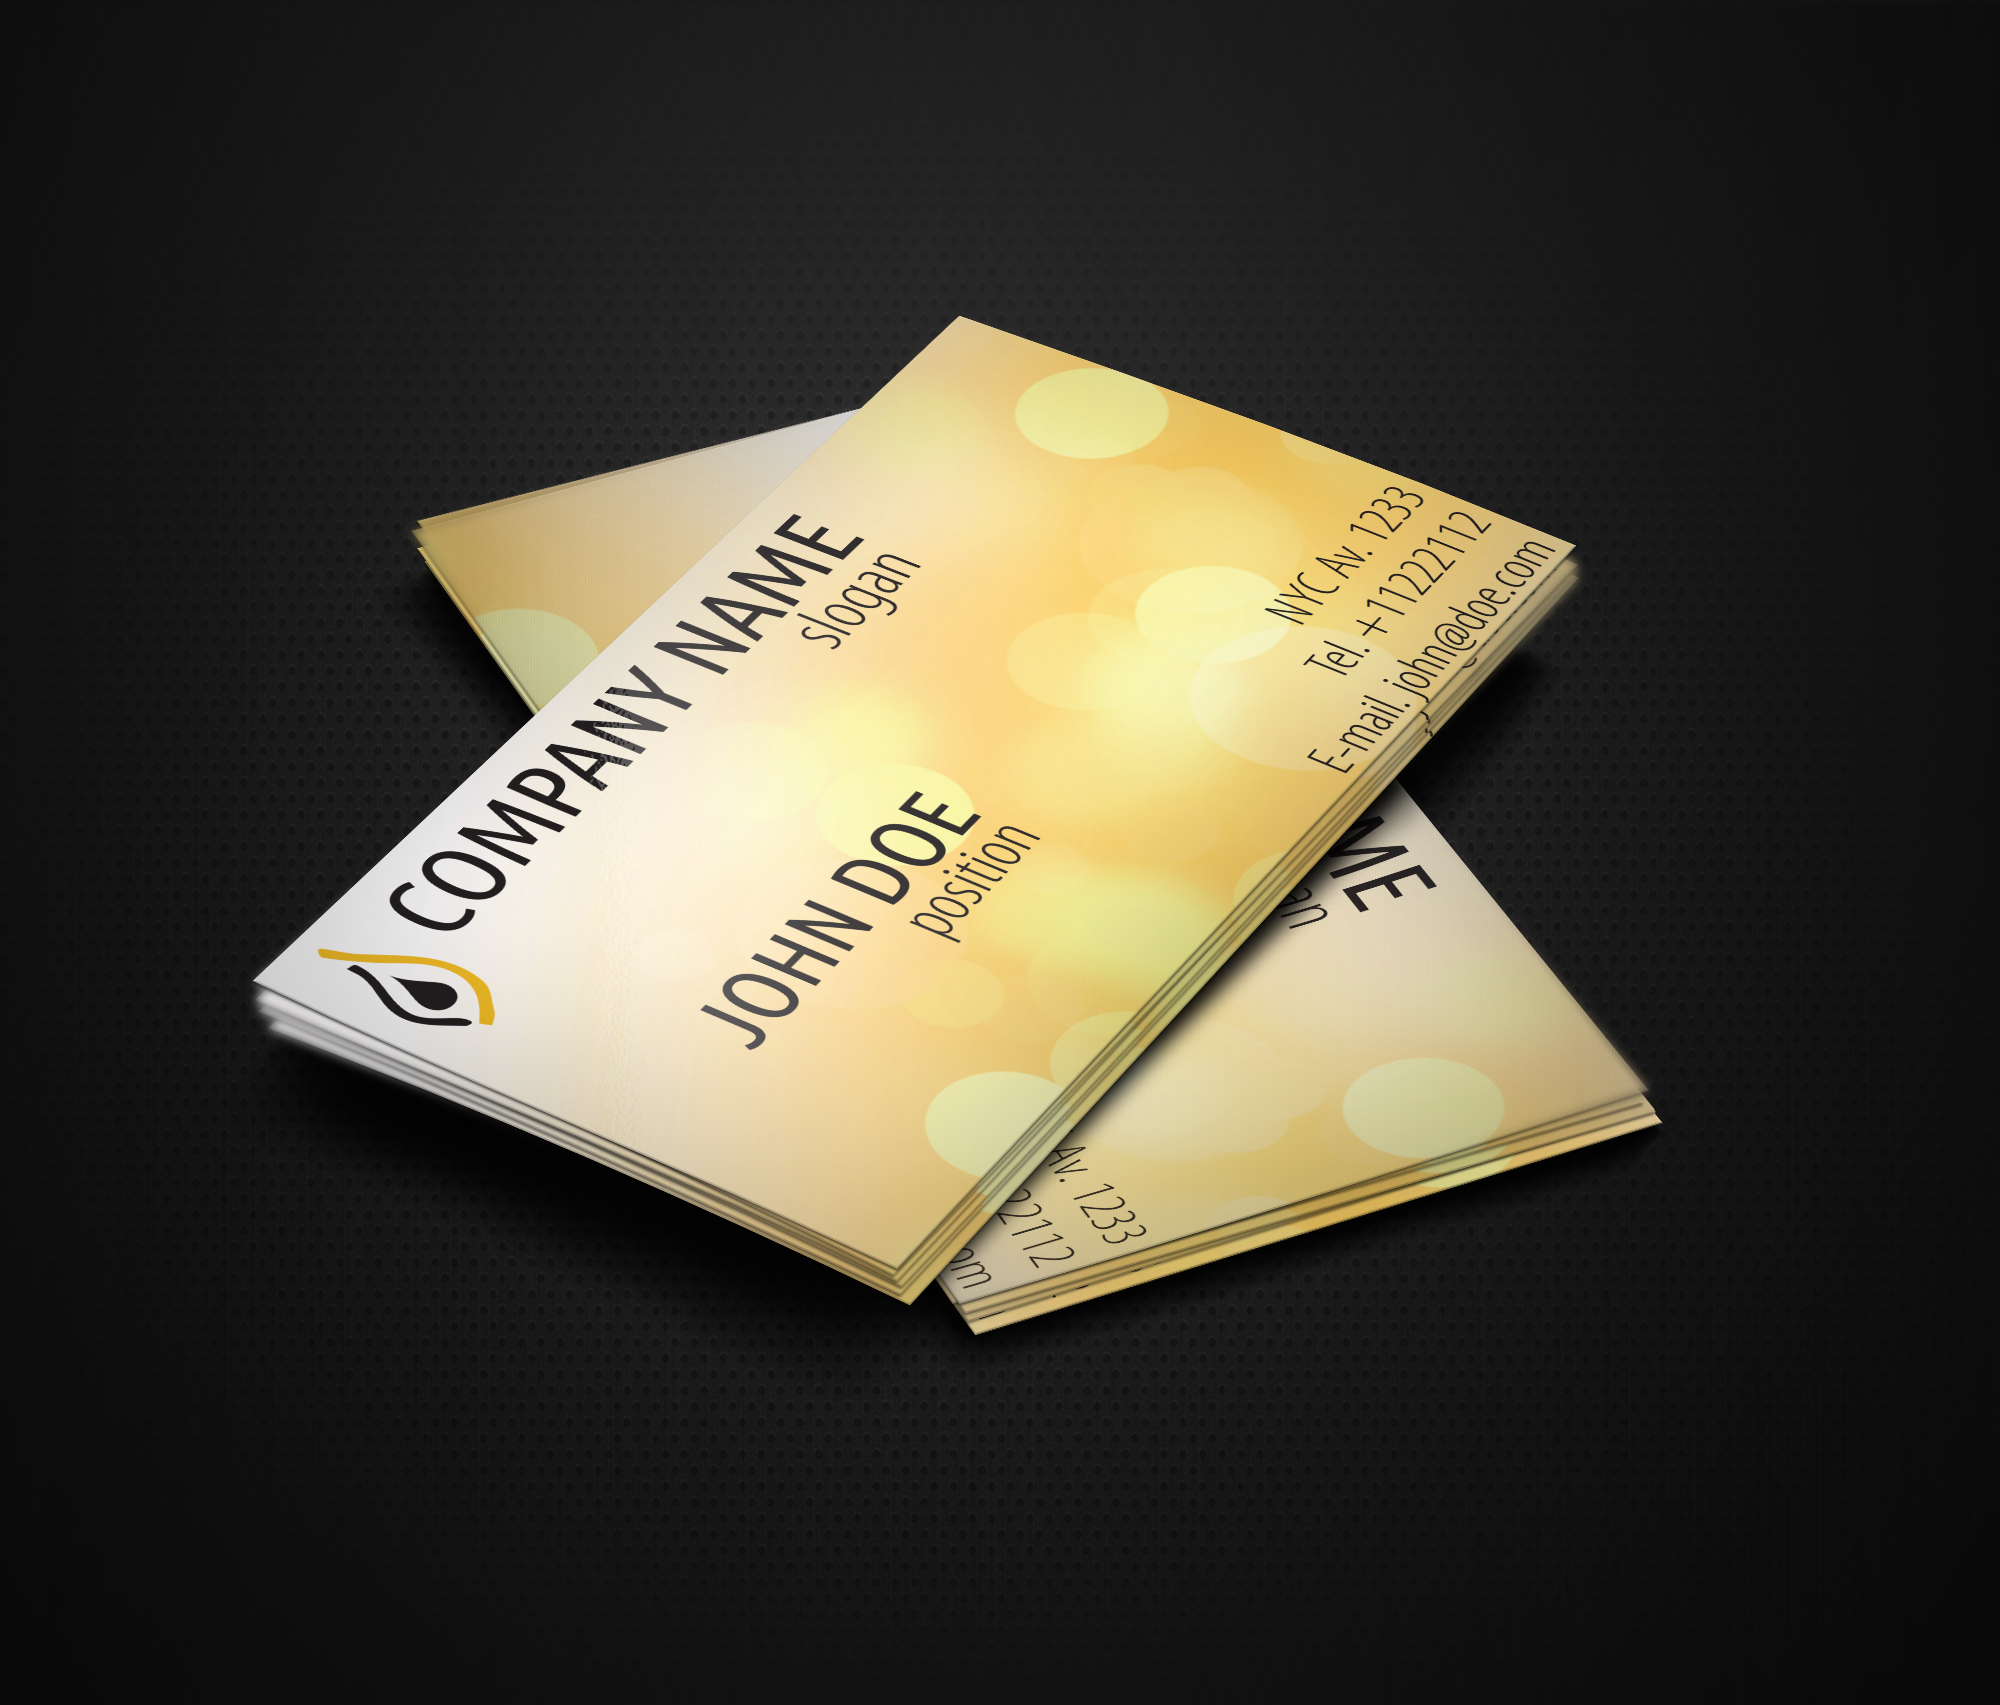 free vertical taxi business card template by borce markoski at